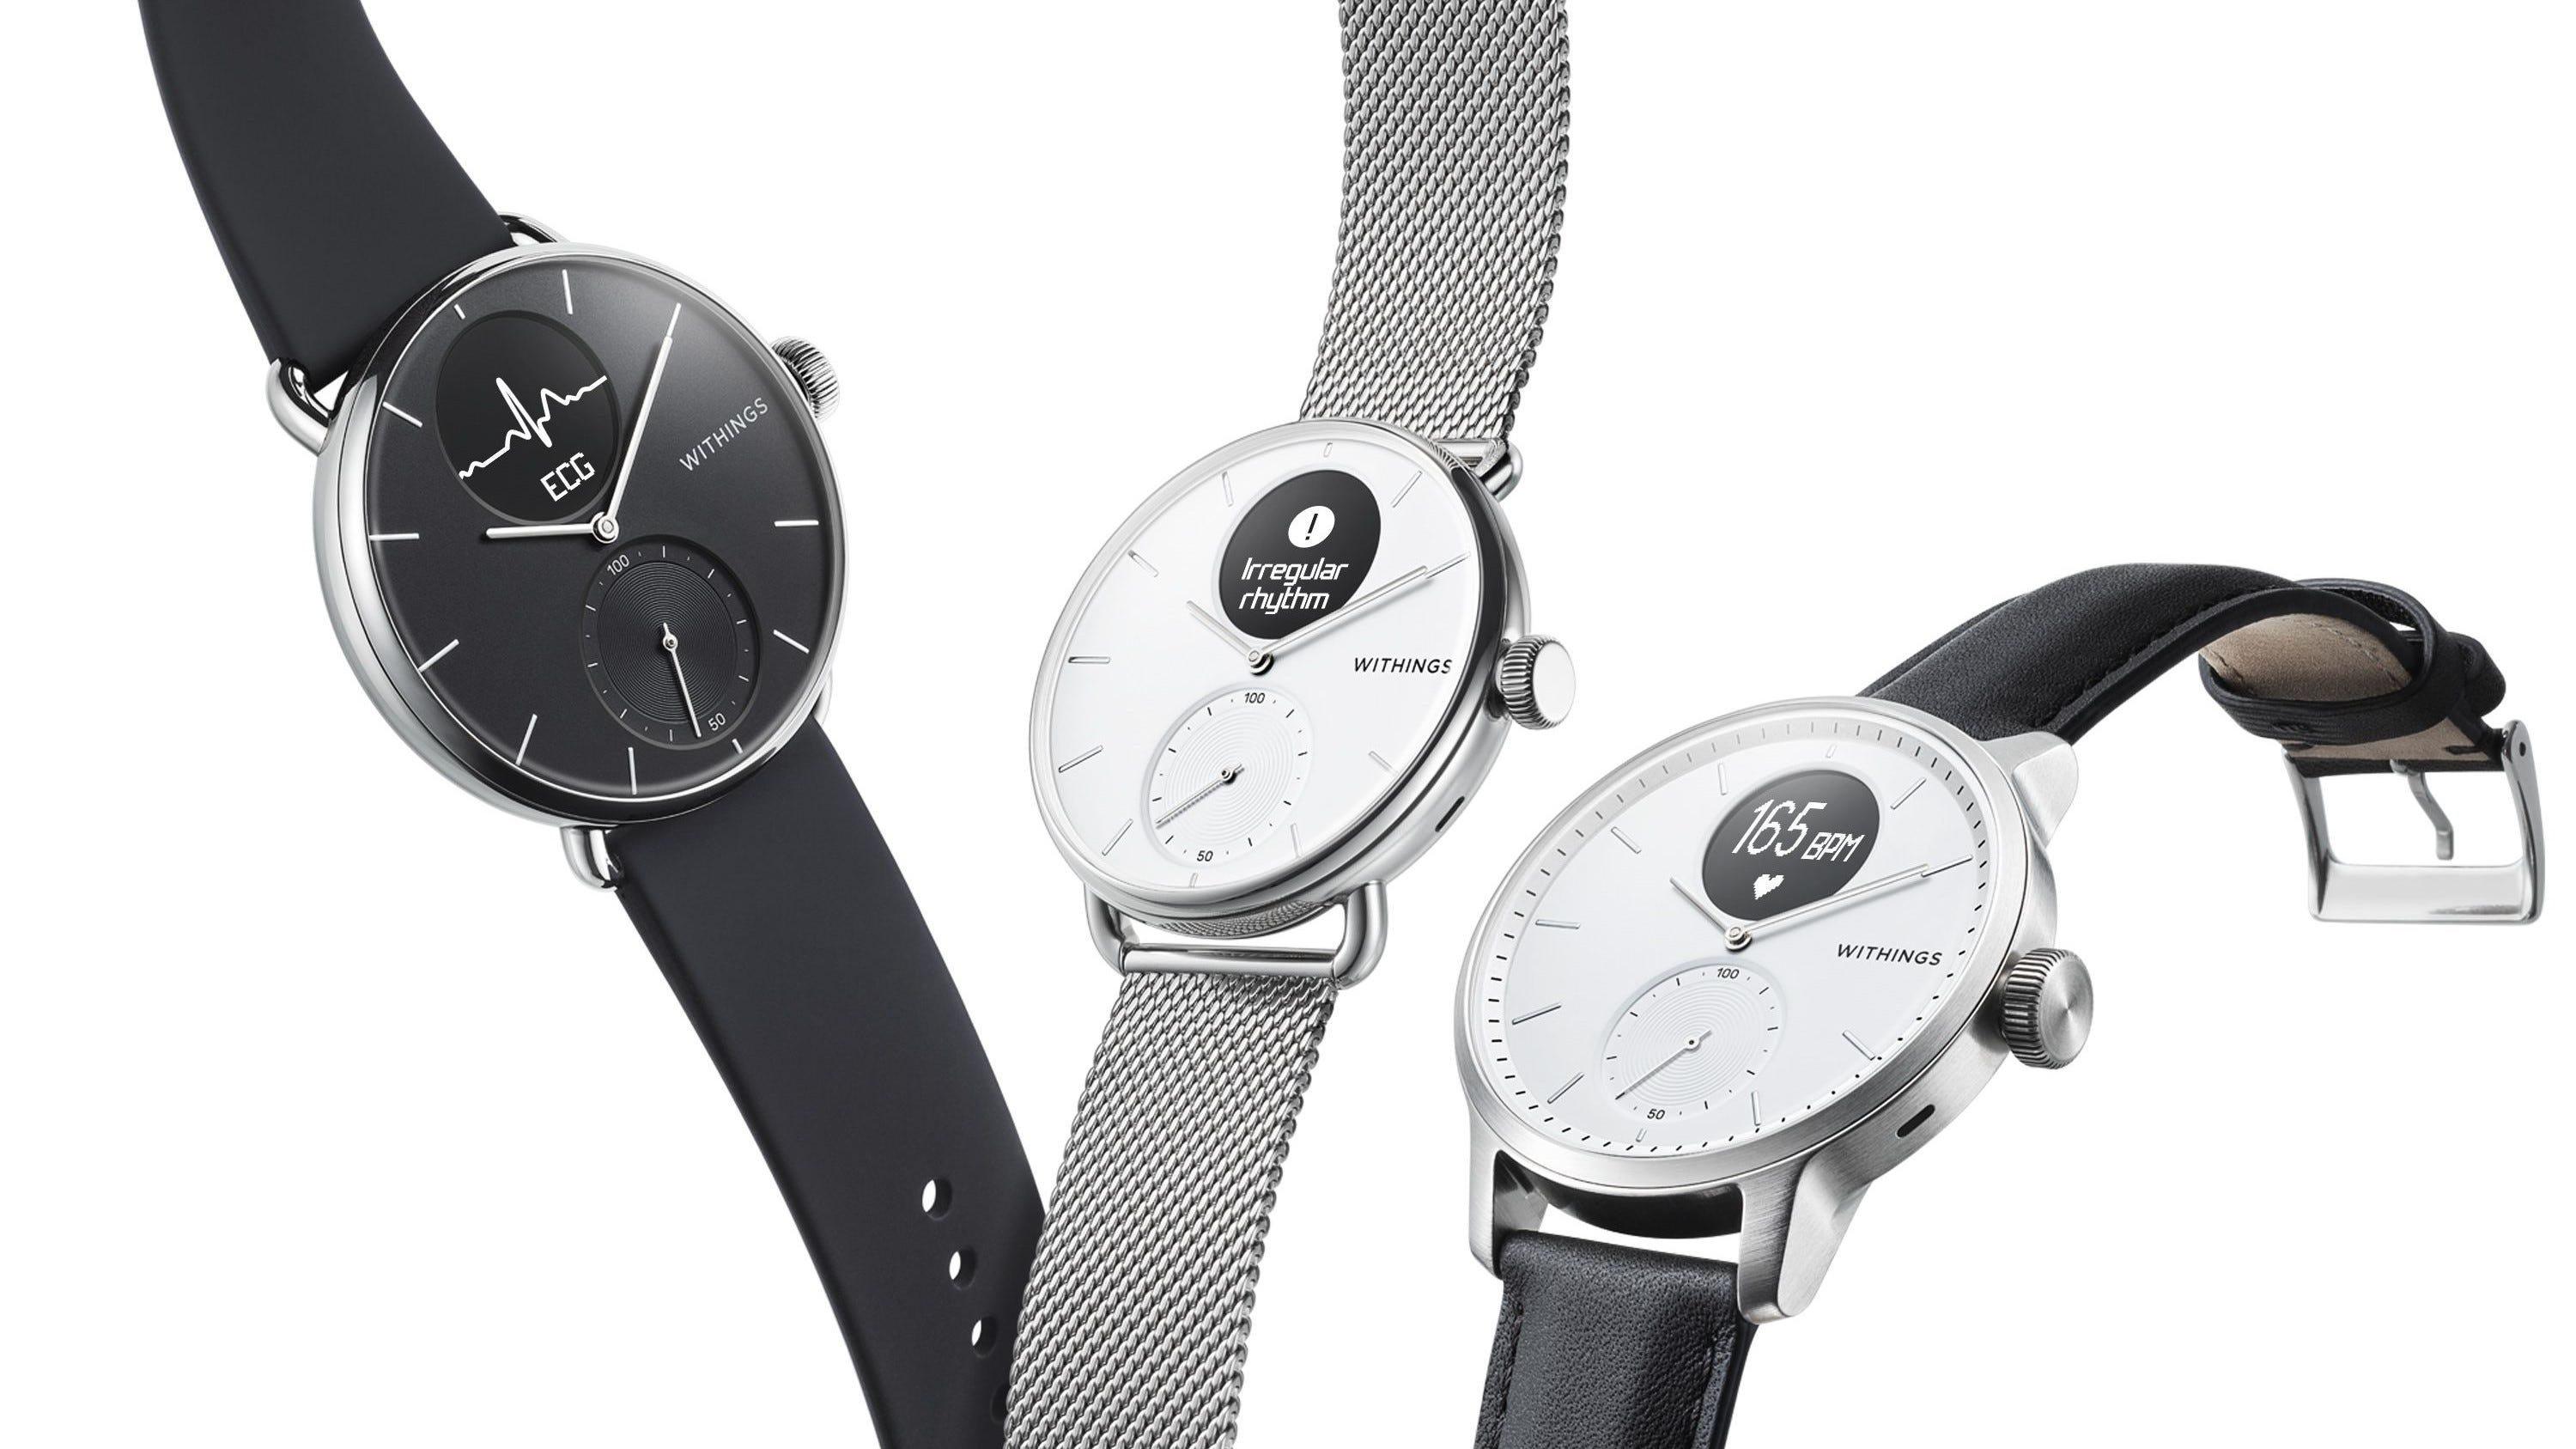 Withings' new ScanWatch